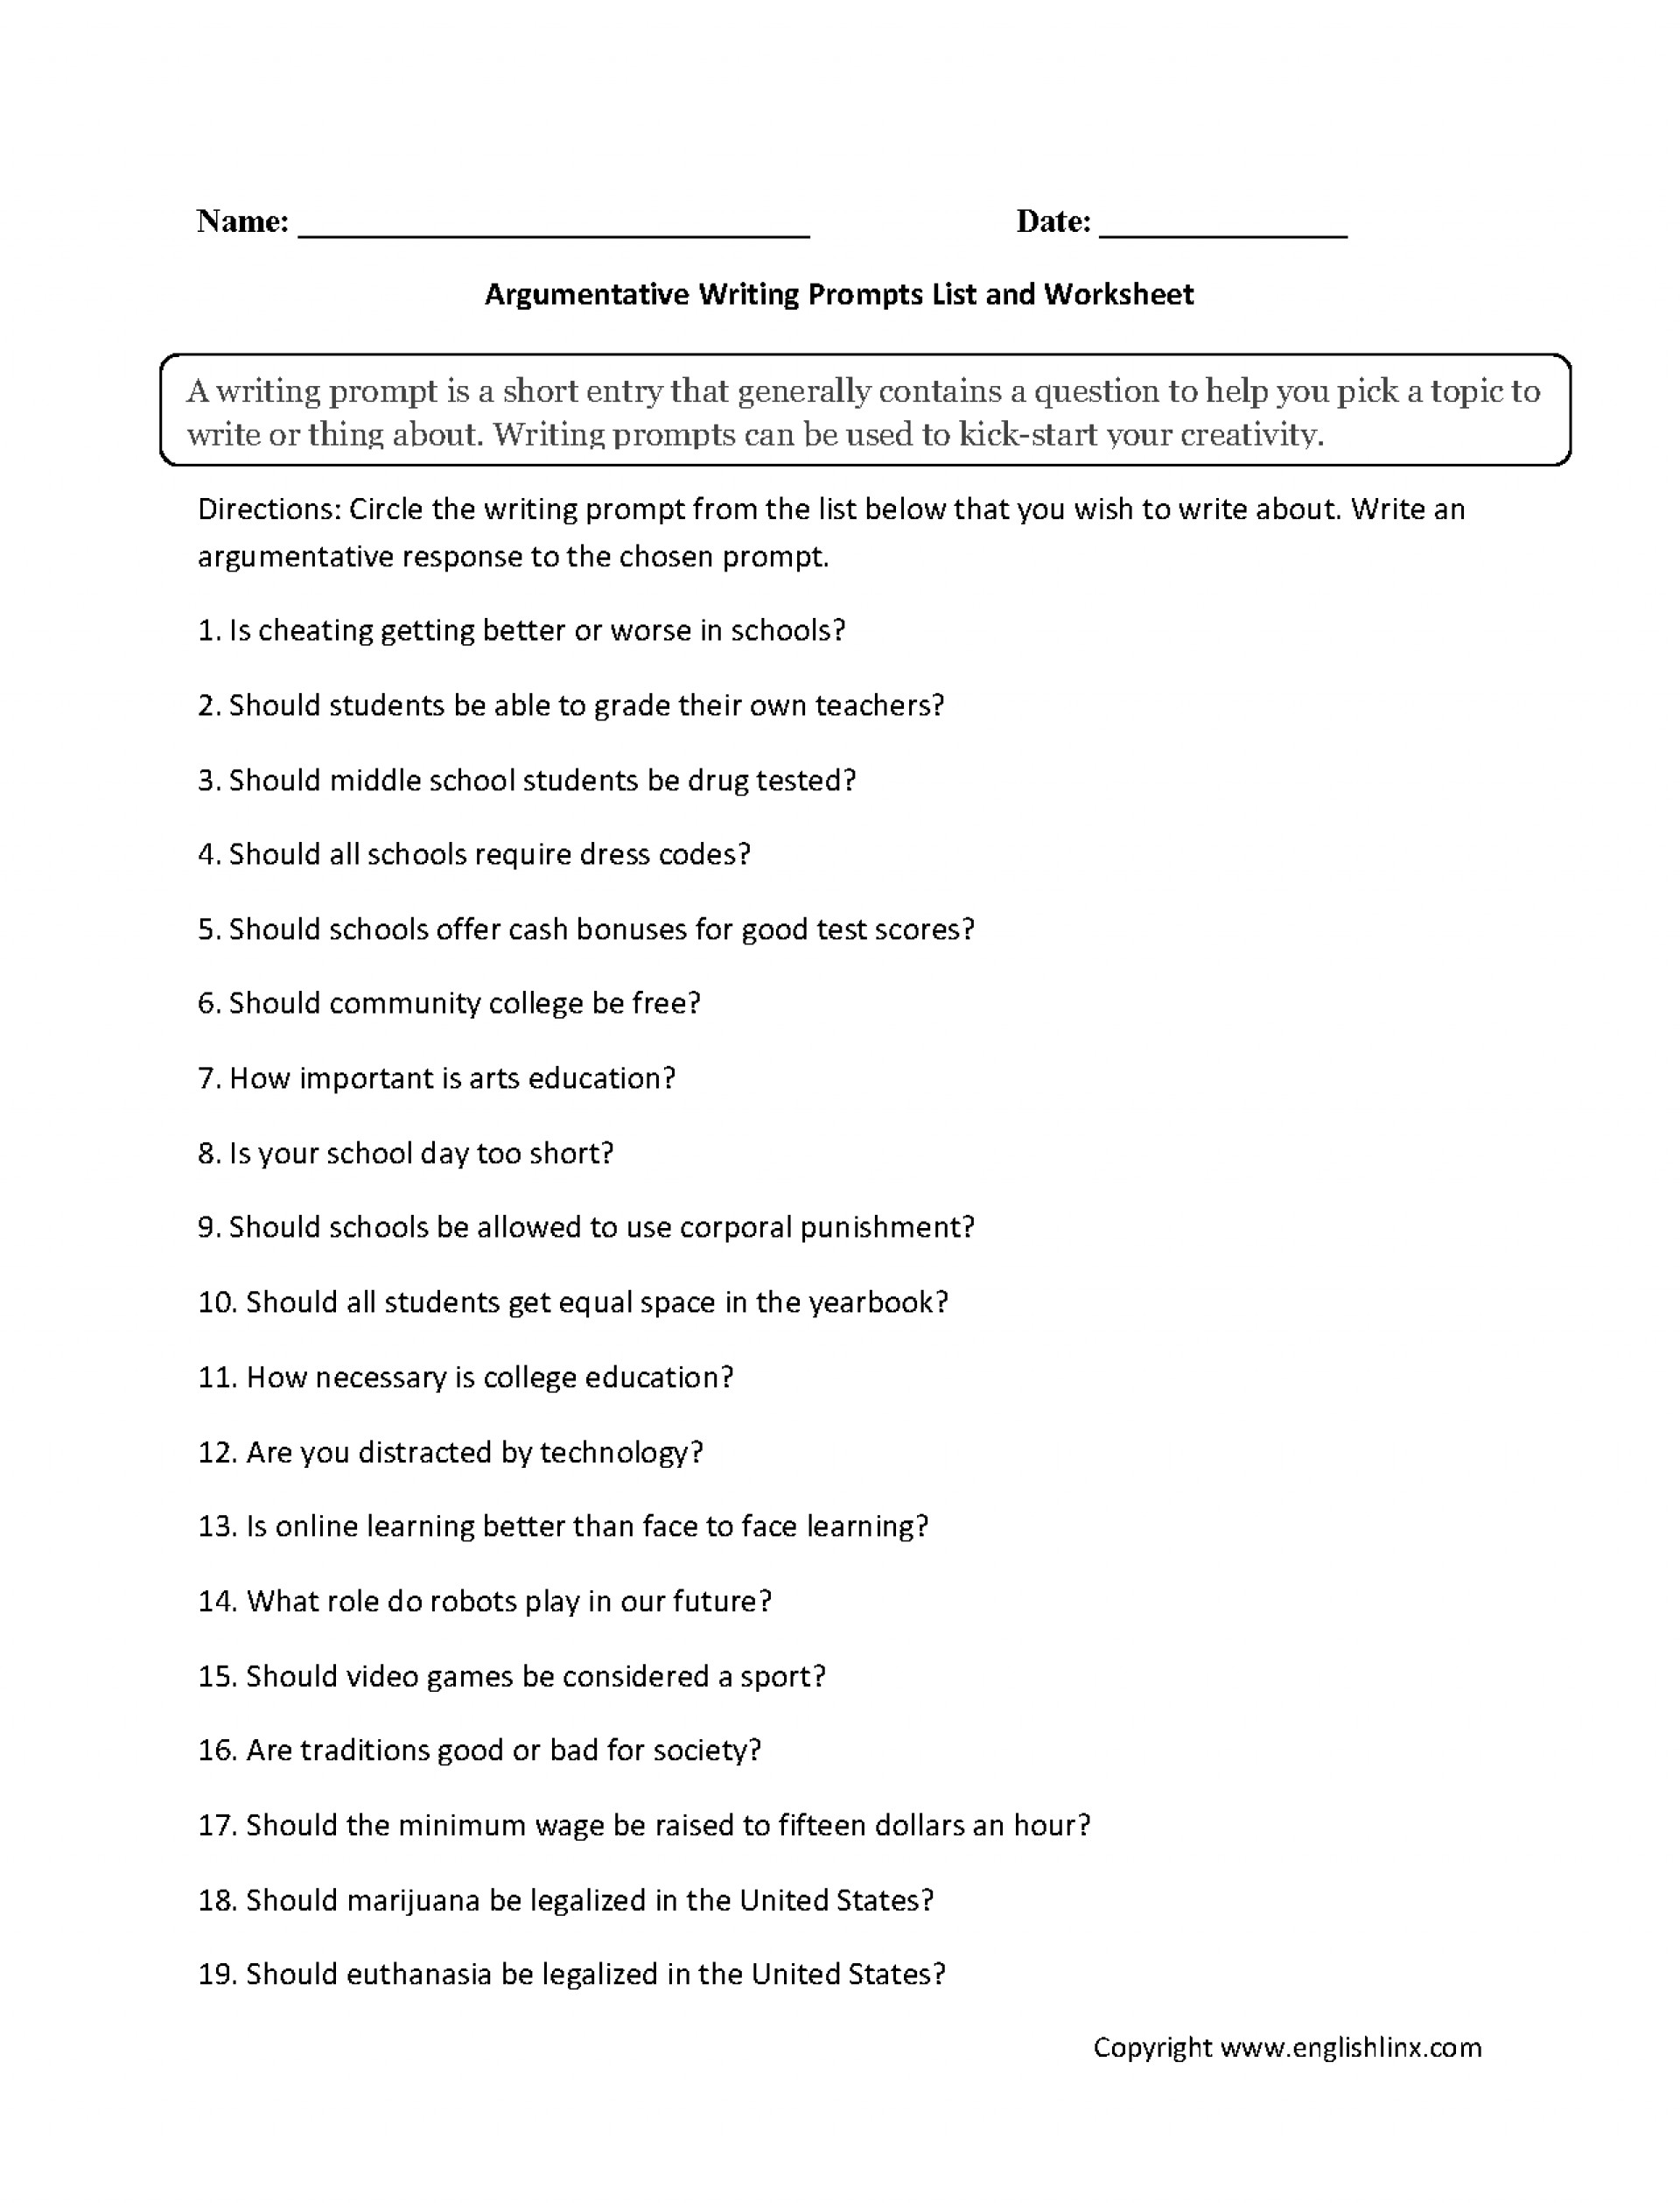 016 Essay Example Argumentative Writing Prompts List Worksheet Minimum Unforgettable Wage Against Raising Persuasive 1920